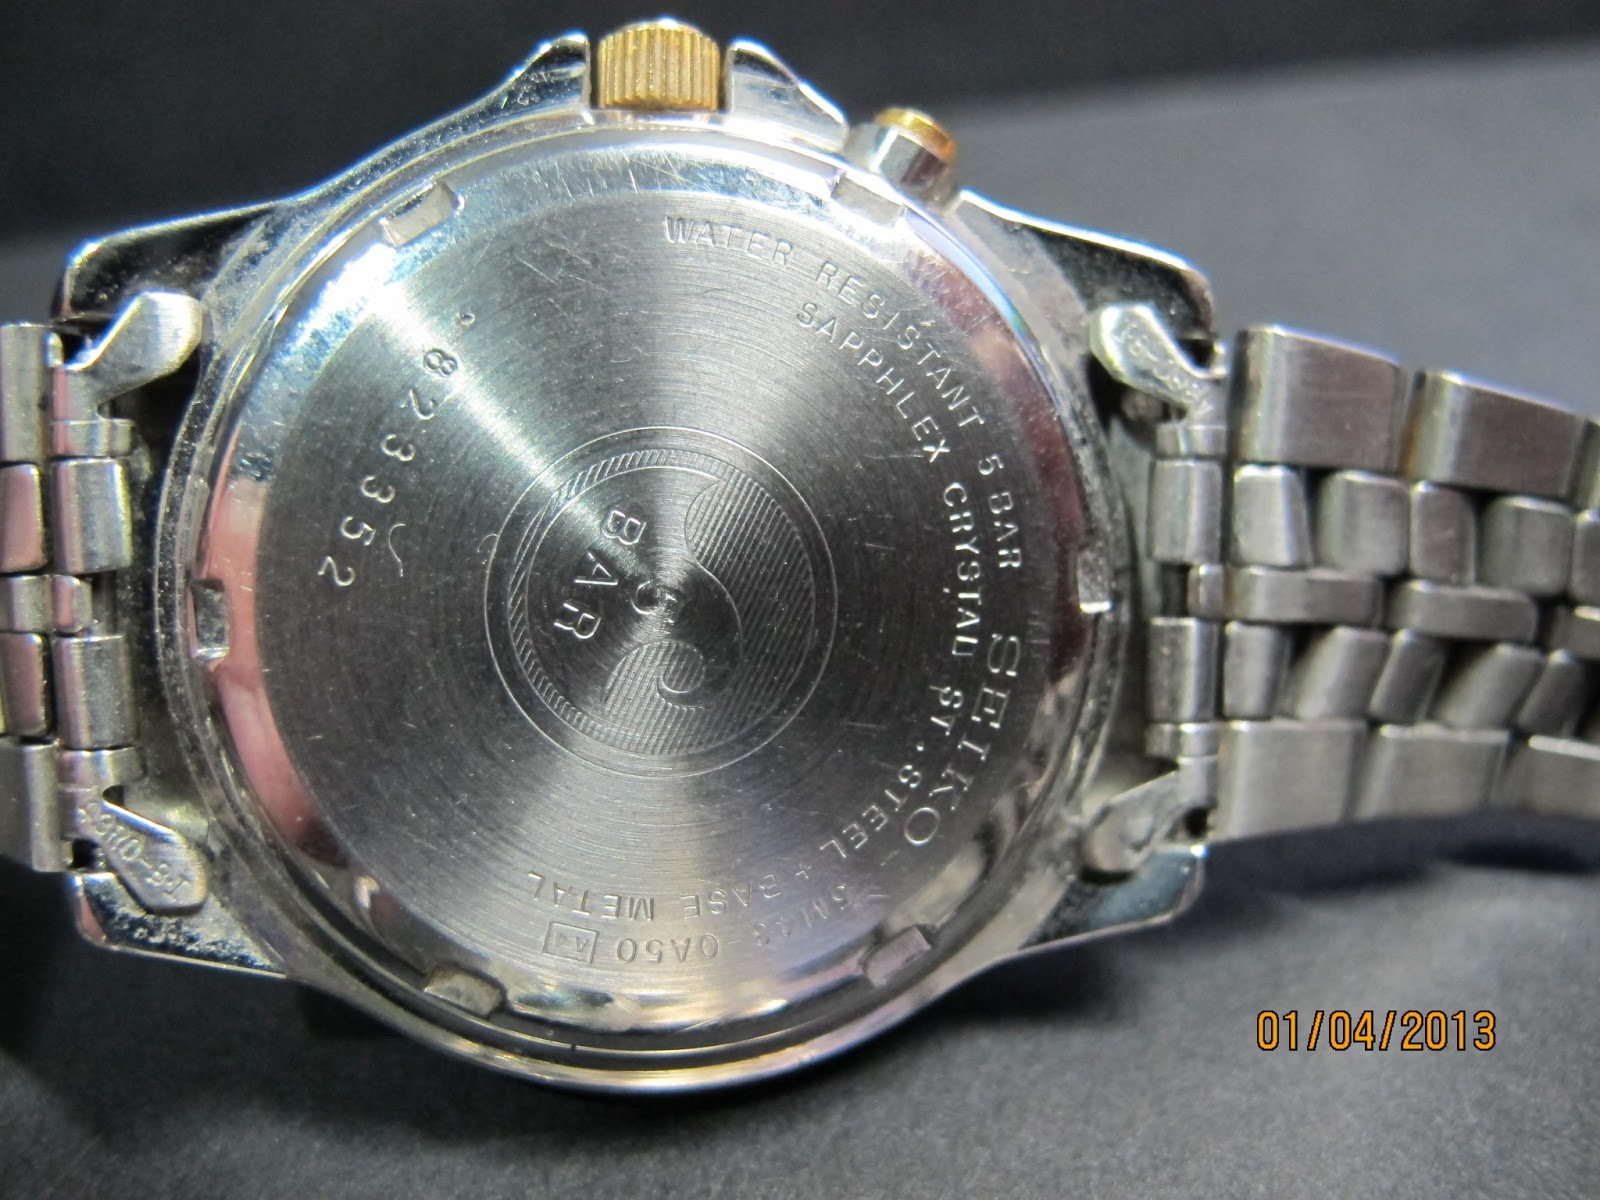 The Way I See Kinetic Ags Automatic Generating System Or Auto Quartz And Even Newer Spring Drive Is A Move Away From Seiko Realised That